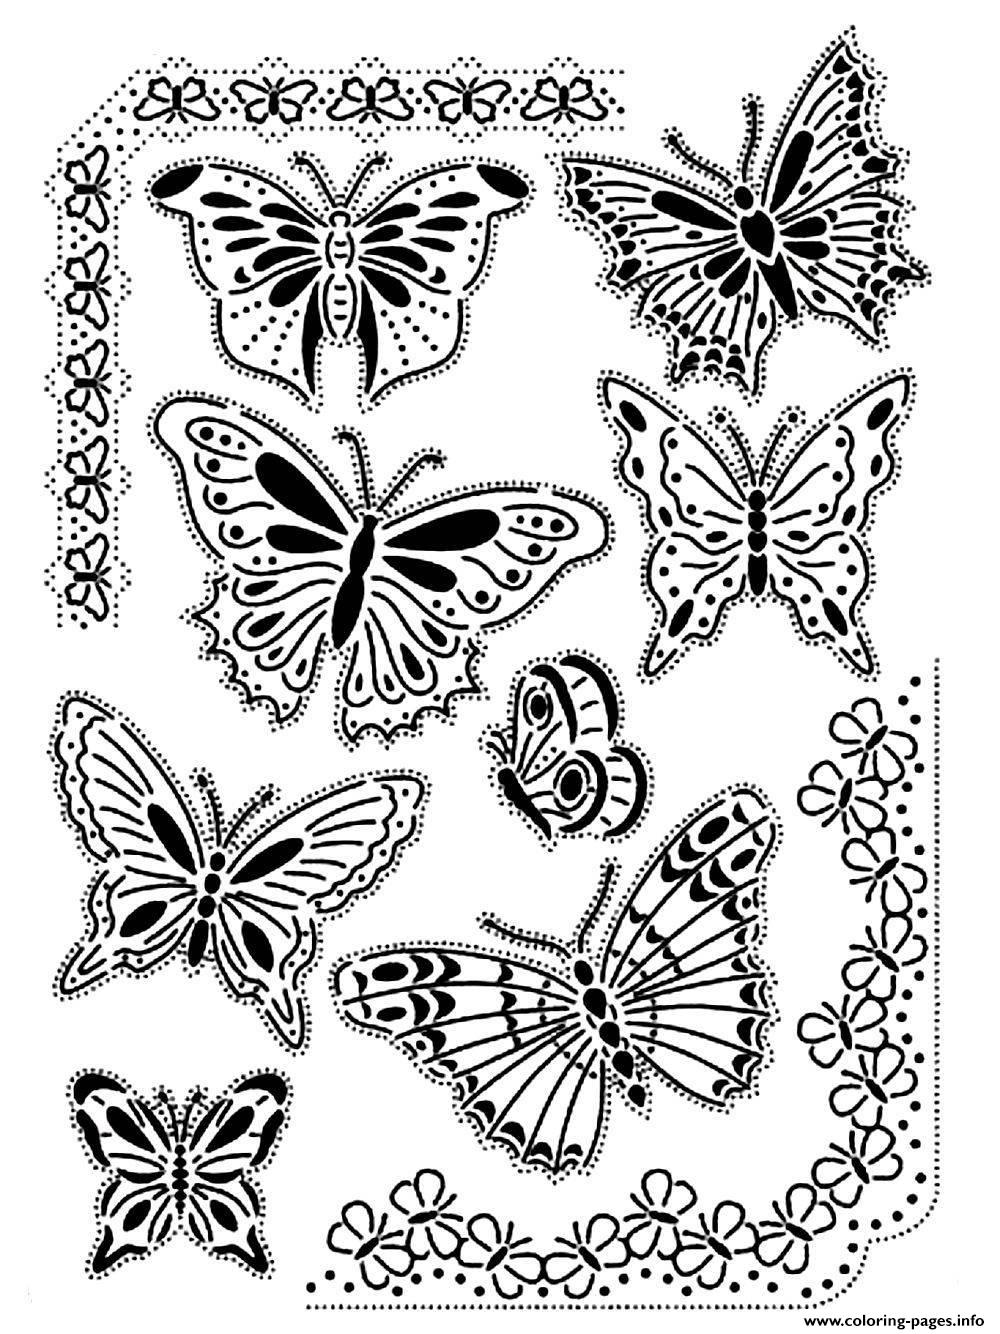 difficult printable butterfly coloring pages coloring pages plicated butterfly coloring pages difficult butterfly printable pages coloring